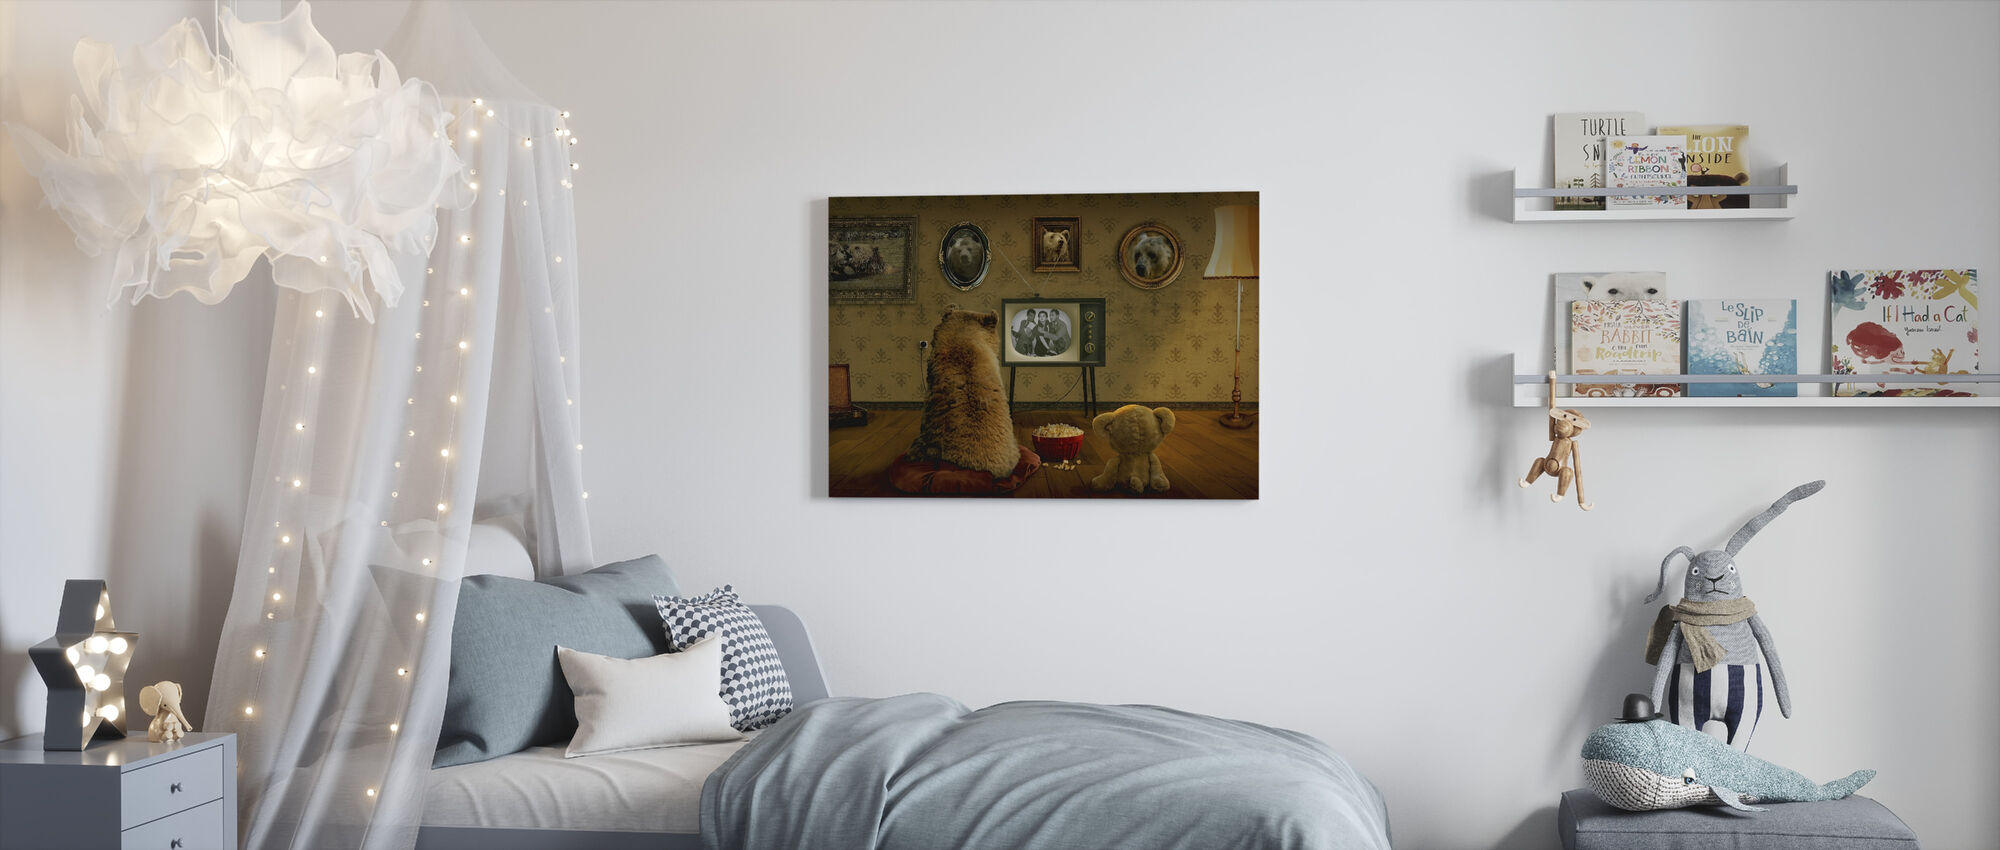 Beer en Teddy - Canvas print - Kinderkamer